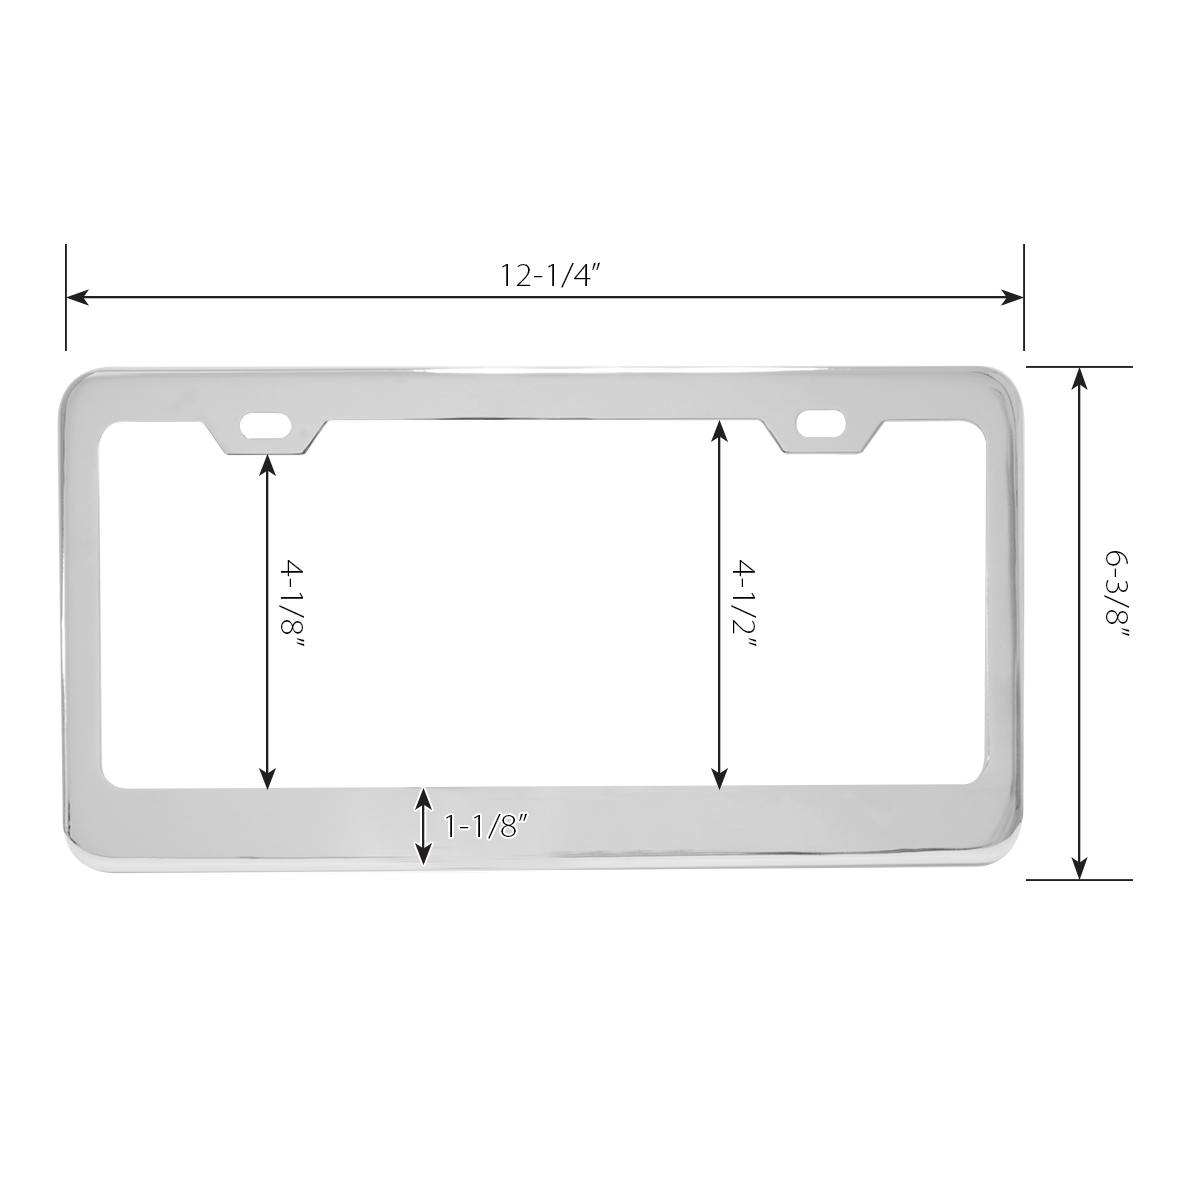 60440 Plain Chrome Plated Steel 2 Hole License Plate Frame - Measurements